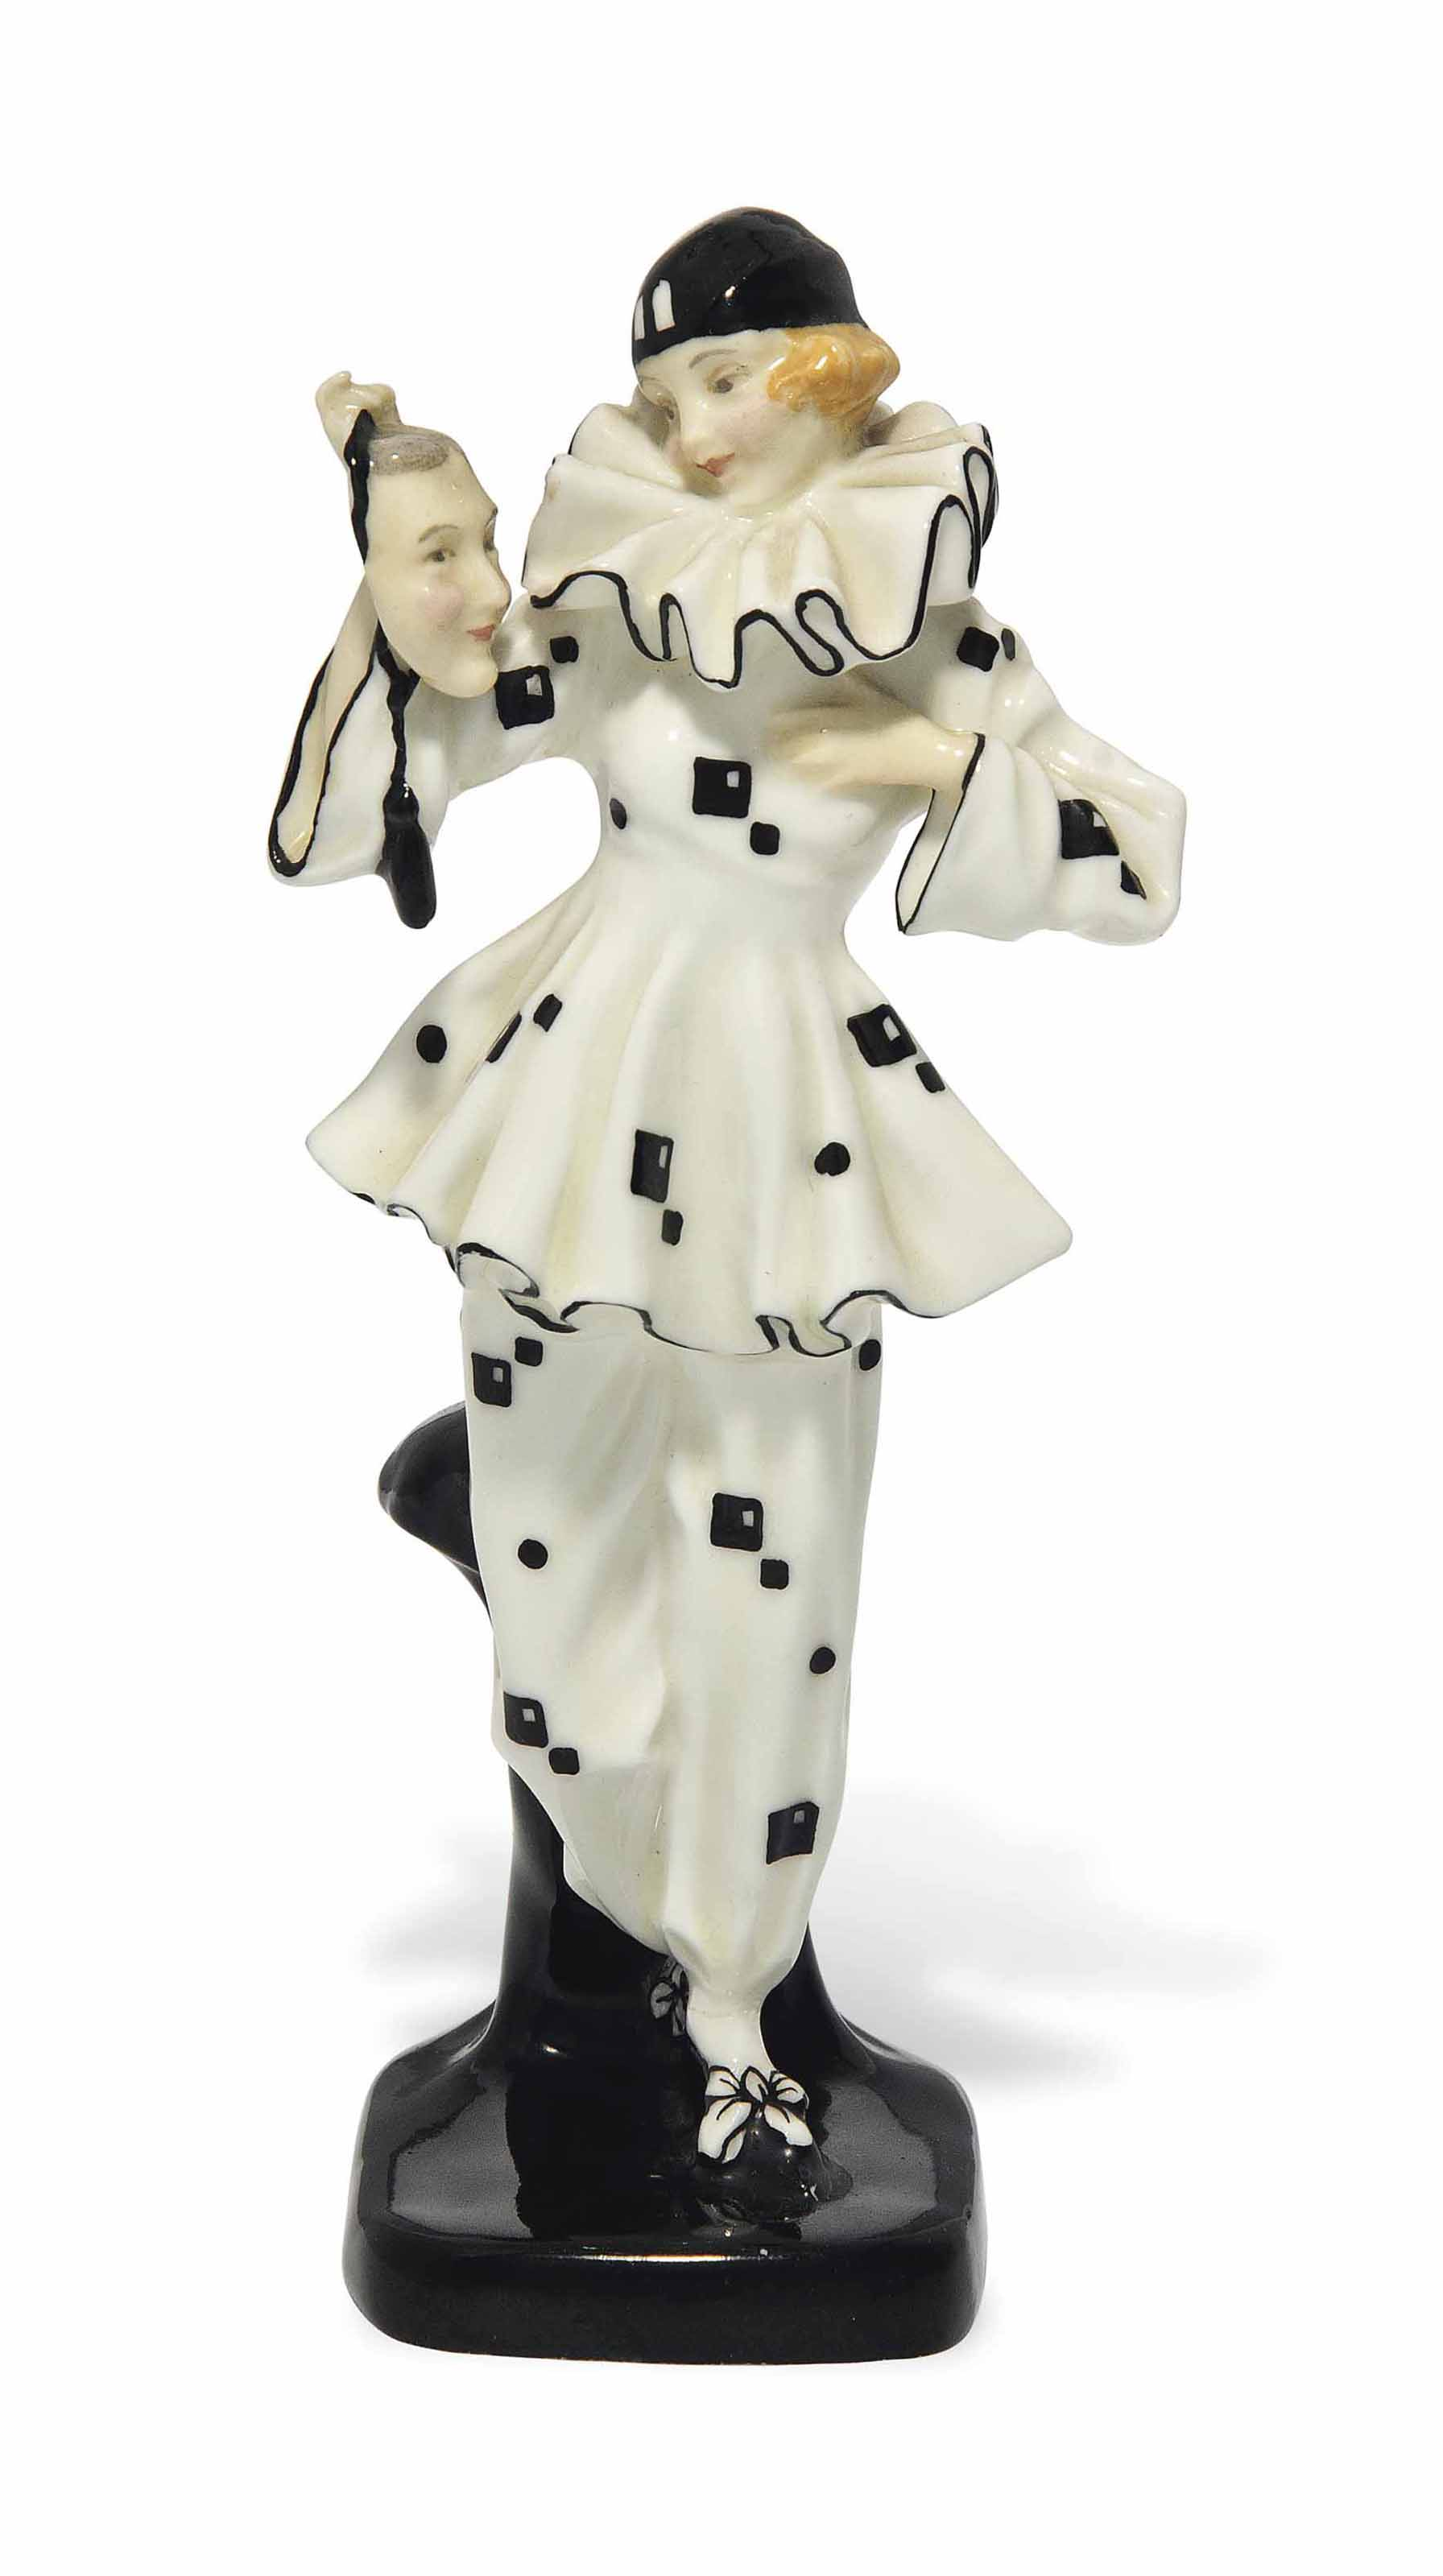 'THE MASK', A ROYAL DOULTON PORCELAIN FIGURE DESIGNED BY LESLIE HARRADINE